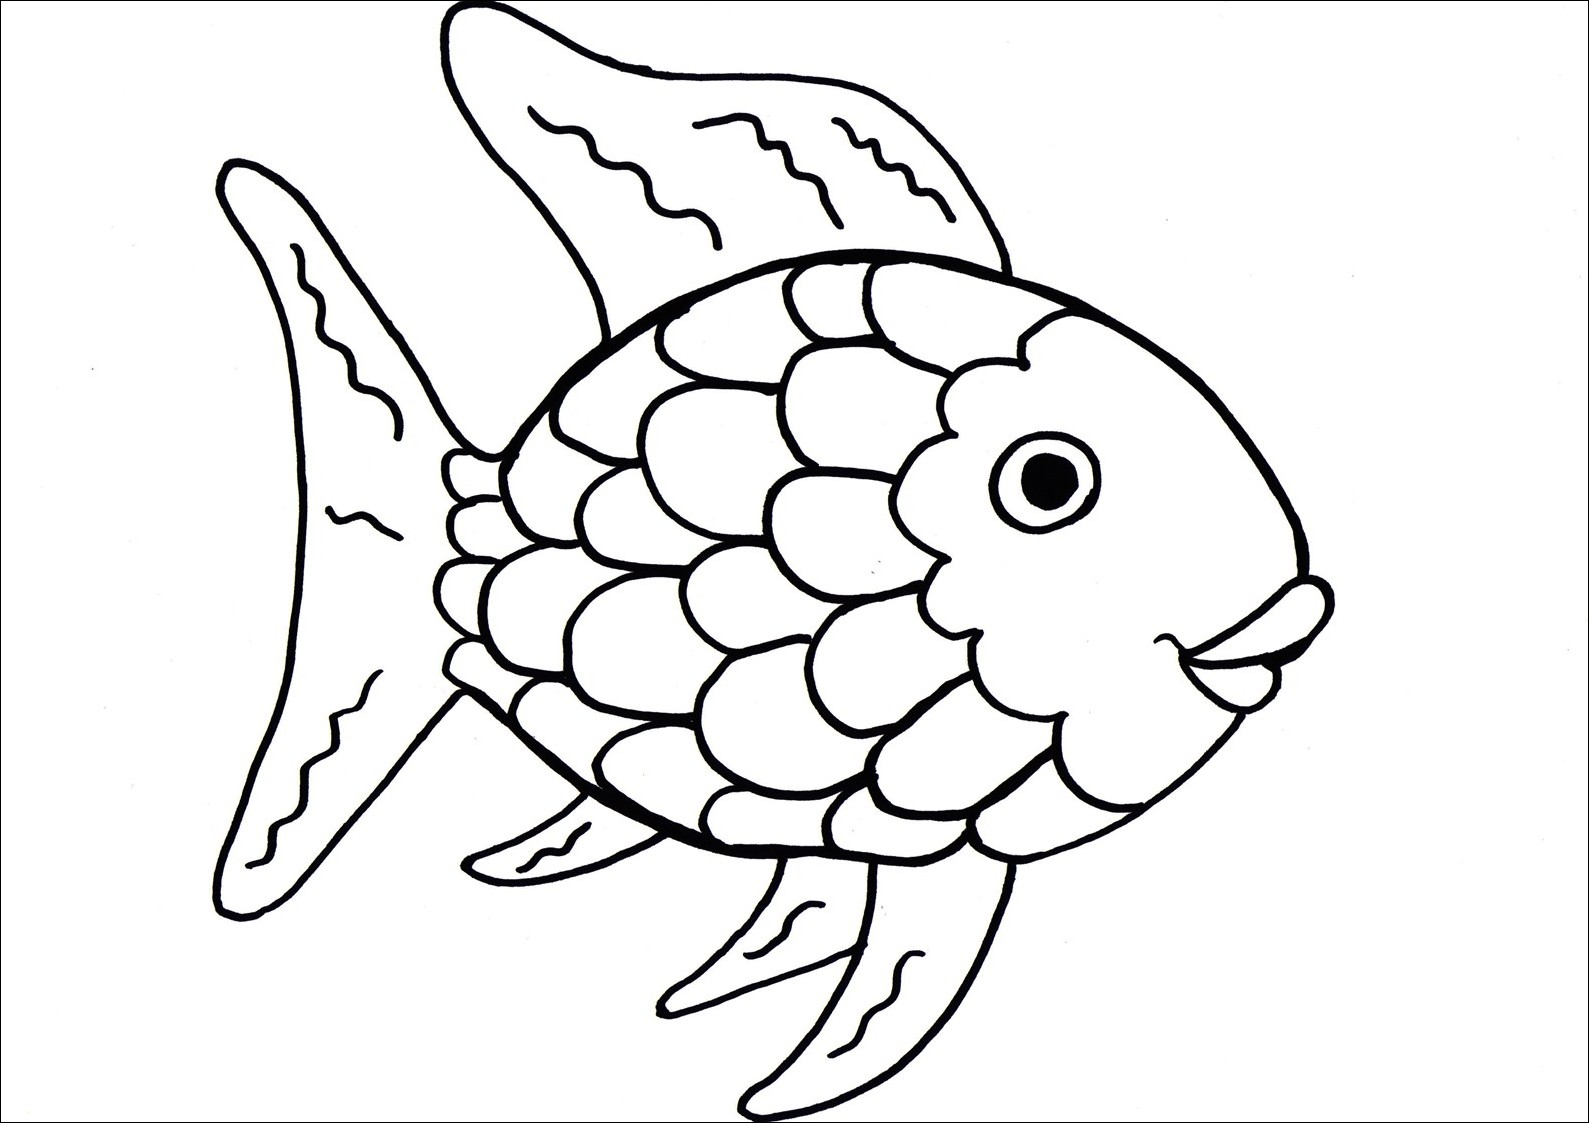 Free Rainbow Fish Template Download Free Clip Art Free Clip Art On Clipart Library